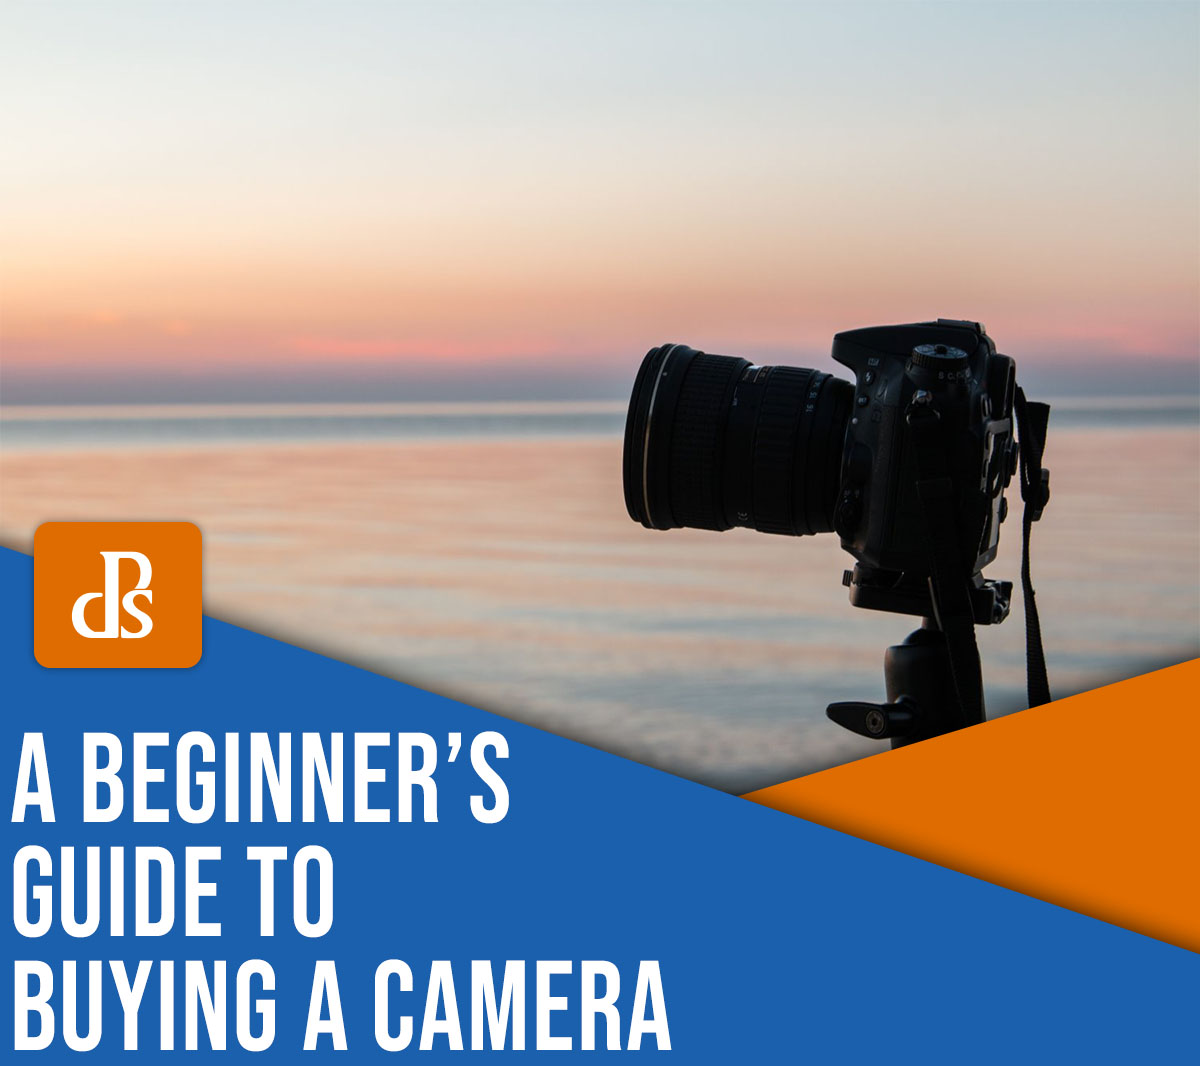 A Beginner's Guide to Buying a Camera (2021 Edition)